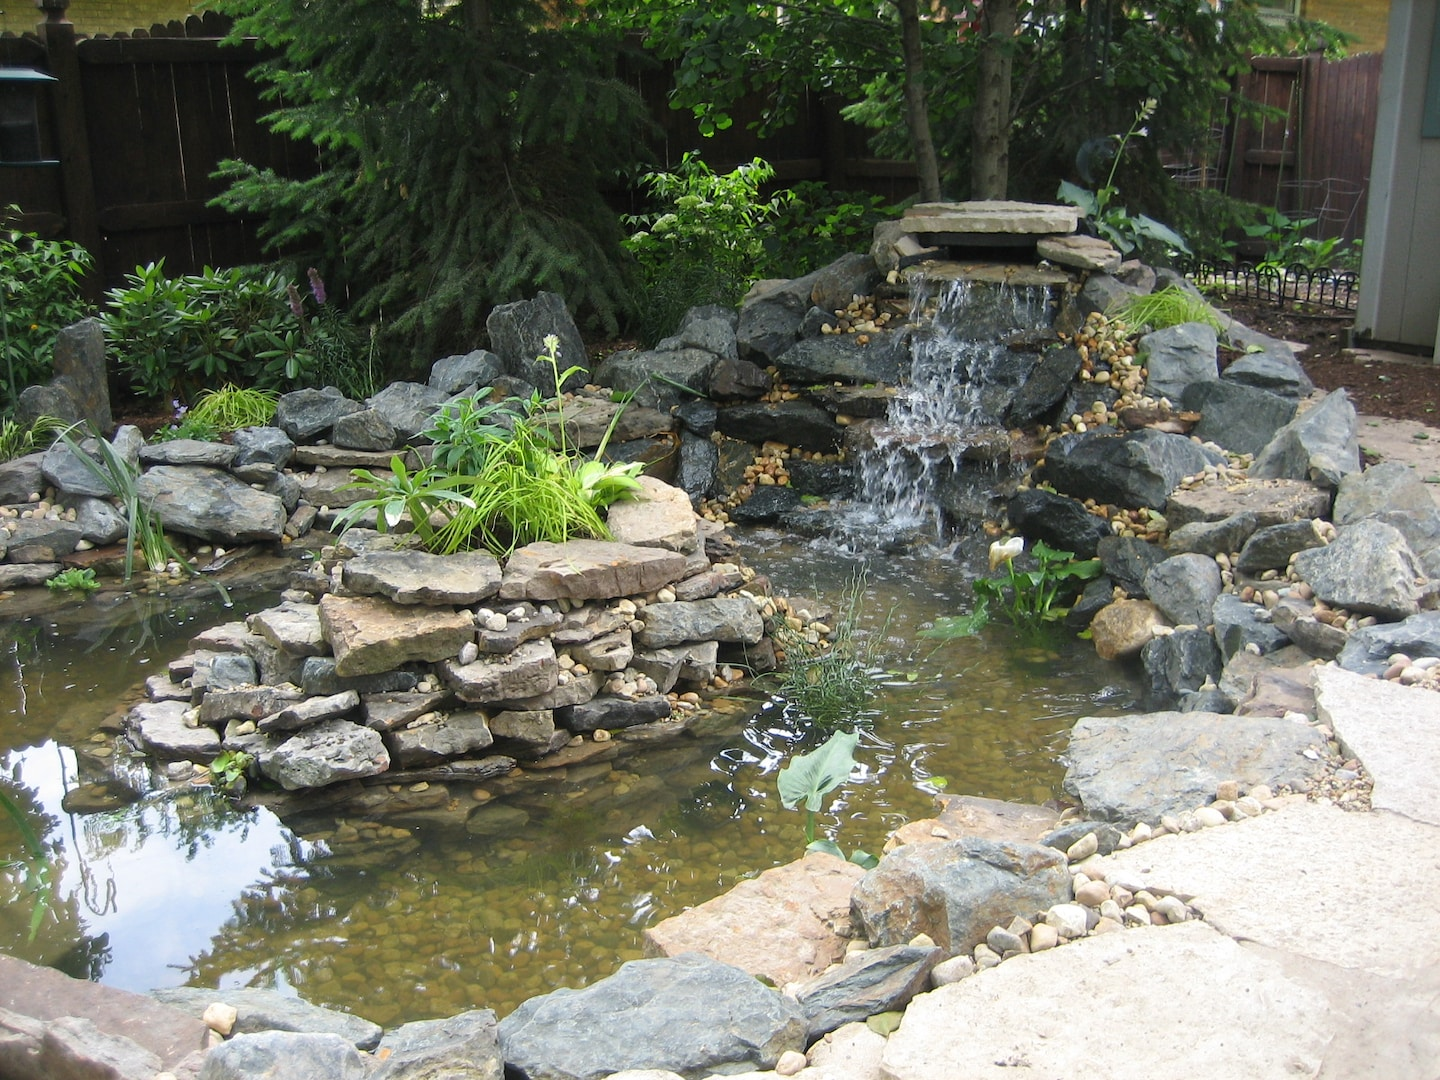 Narnia Landscaping Design And Construction Inc Reviews Wheaton Il Angie S List